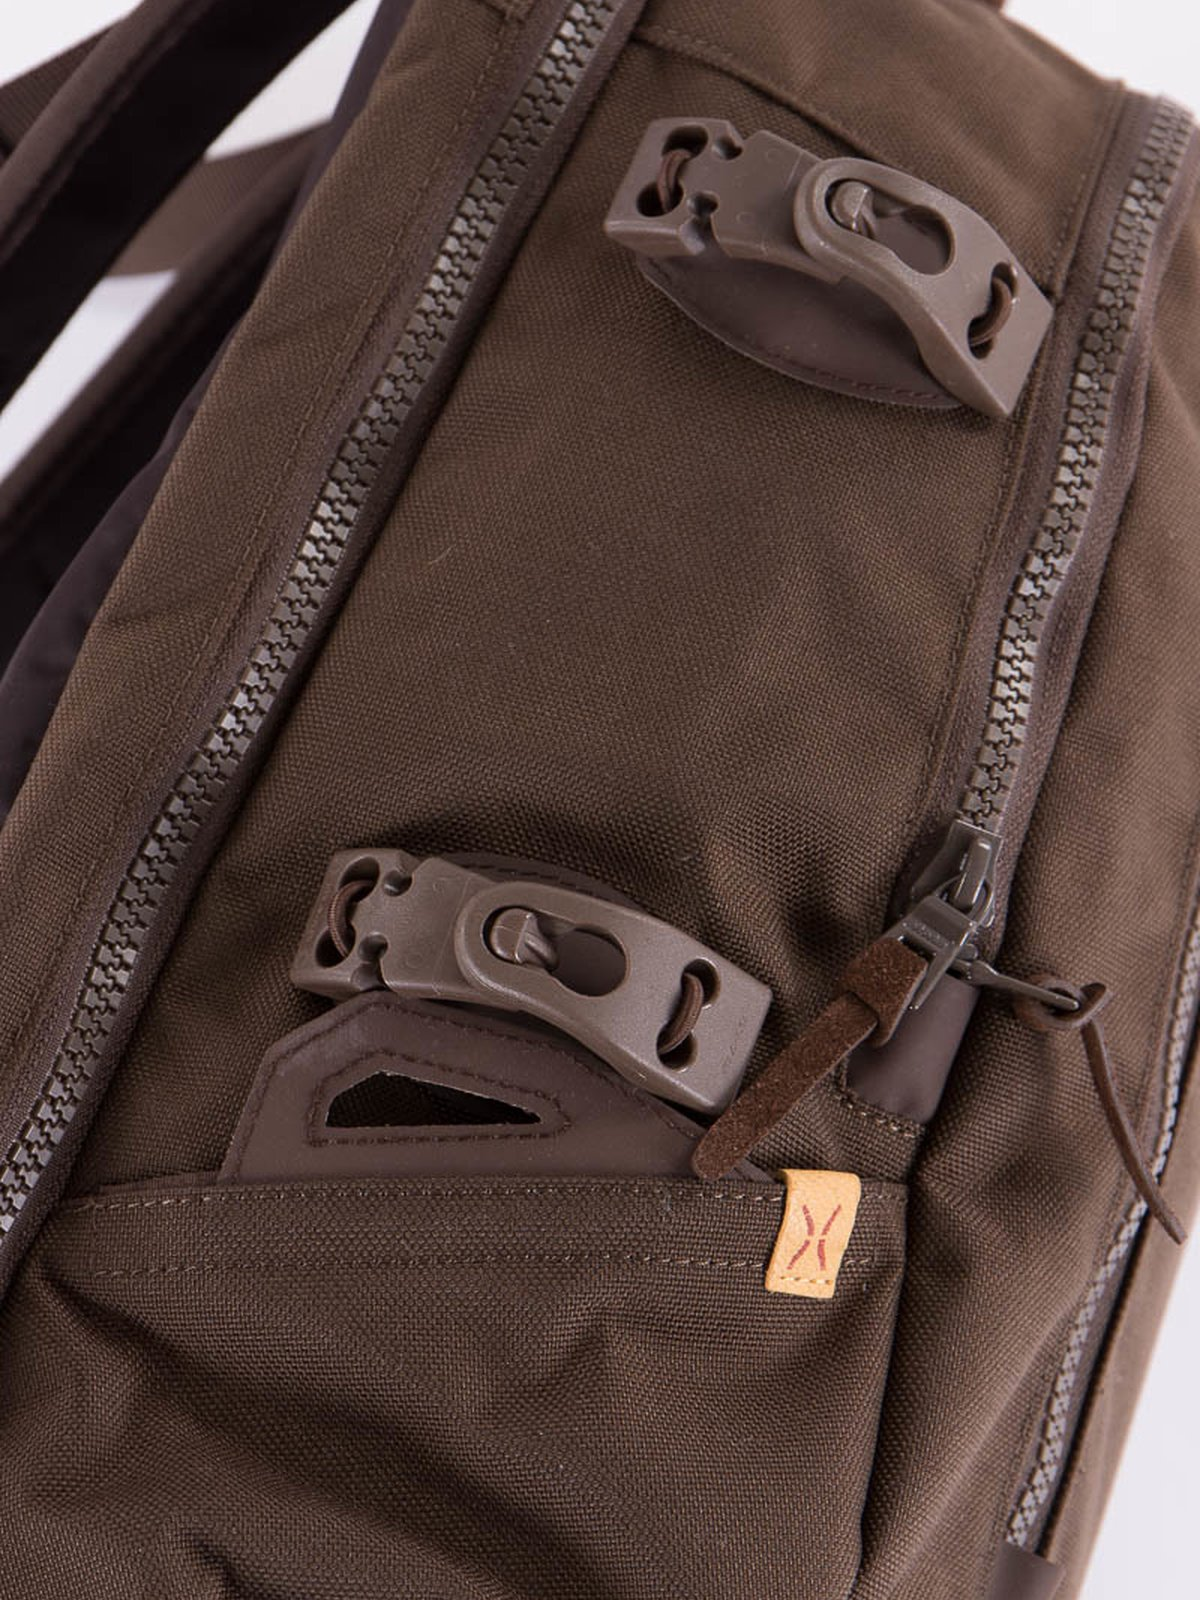 Brown 20L Ballistic Backpack - Image 3